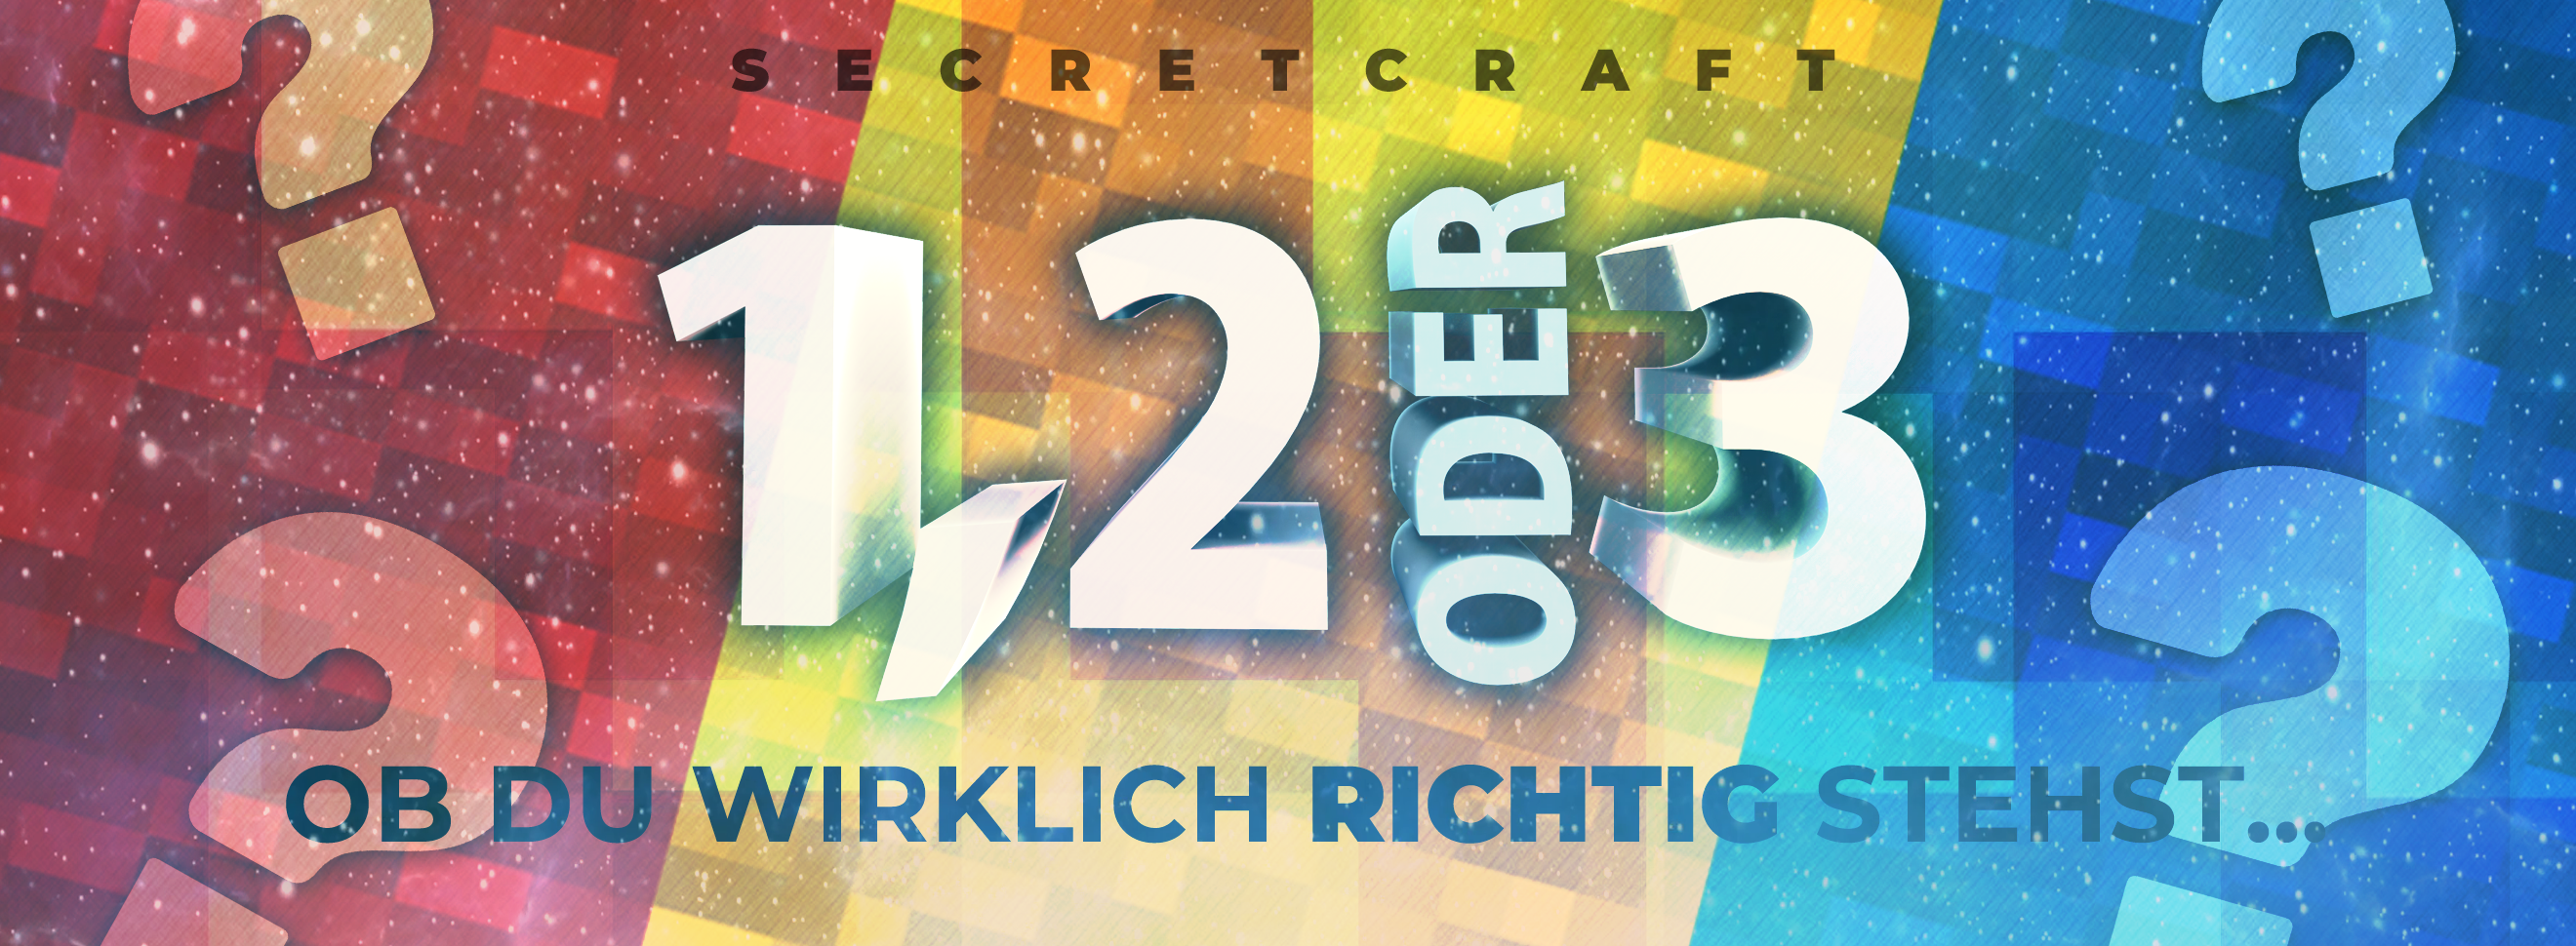 641-191108-sc-1-2-oder-3-event-montage-wiki-png